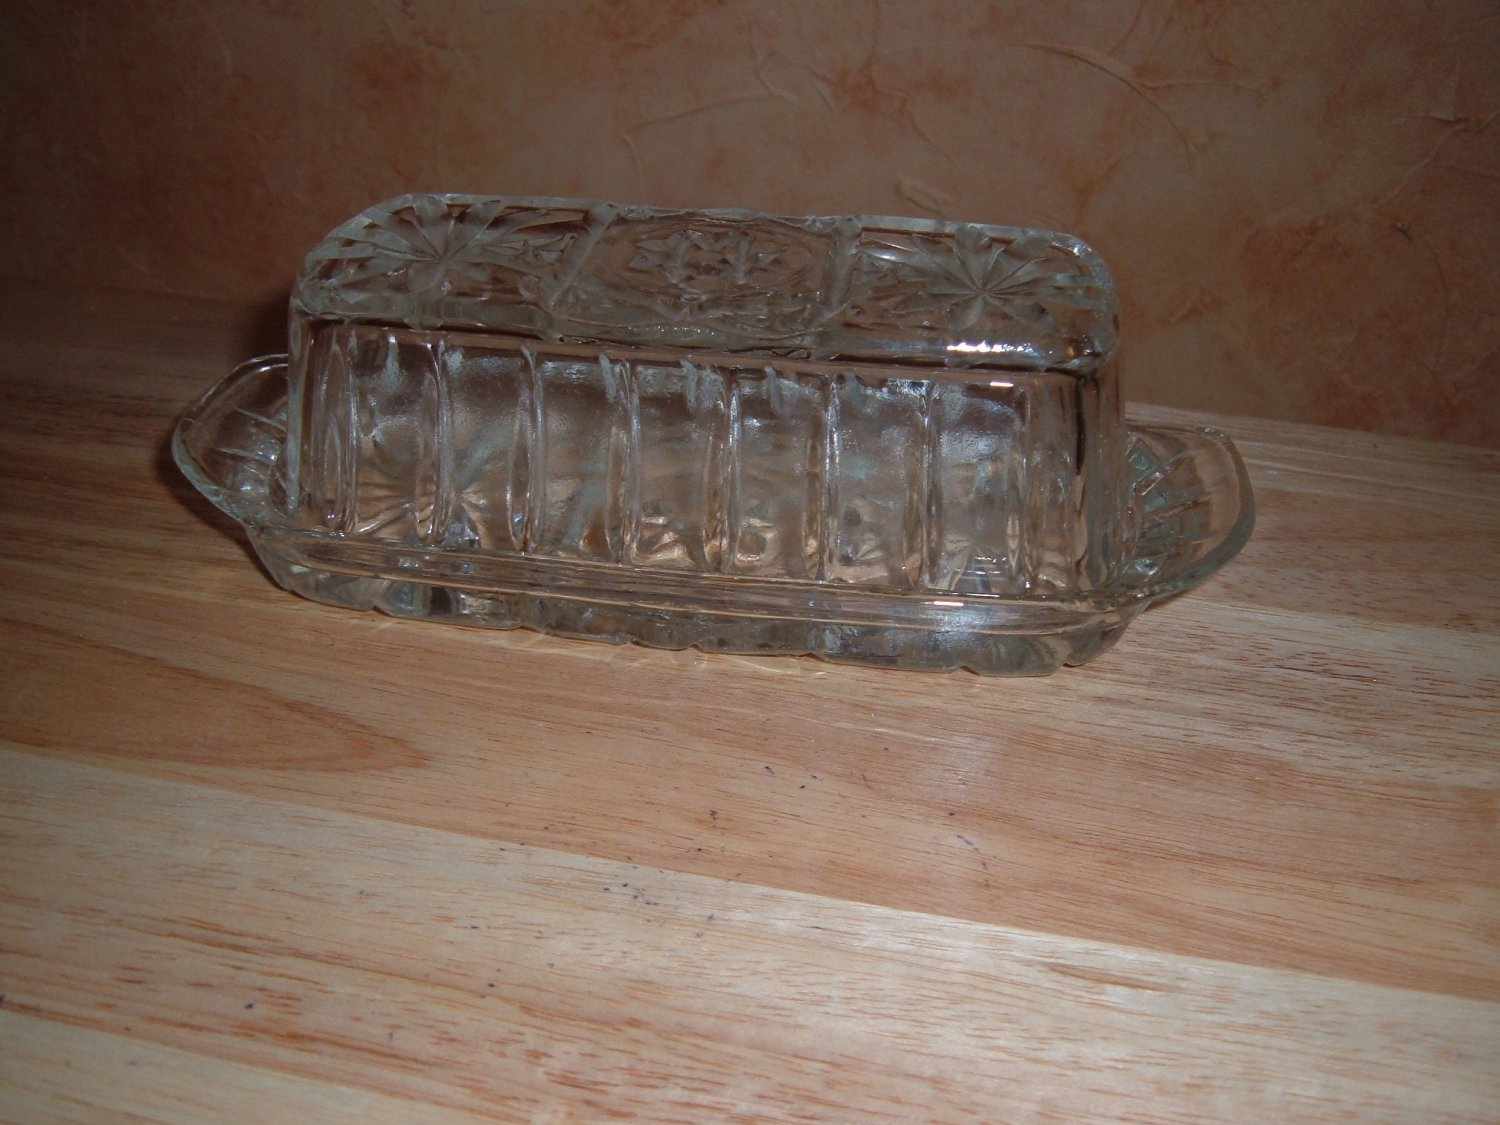 Hocking butter dish